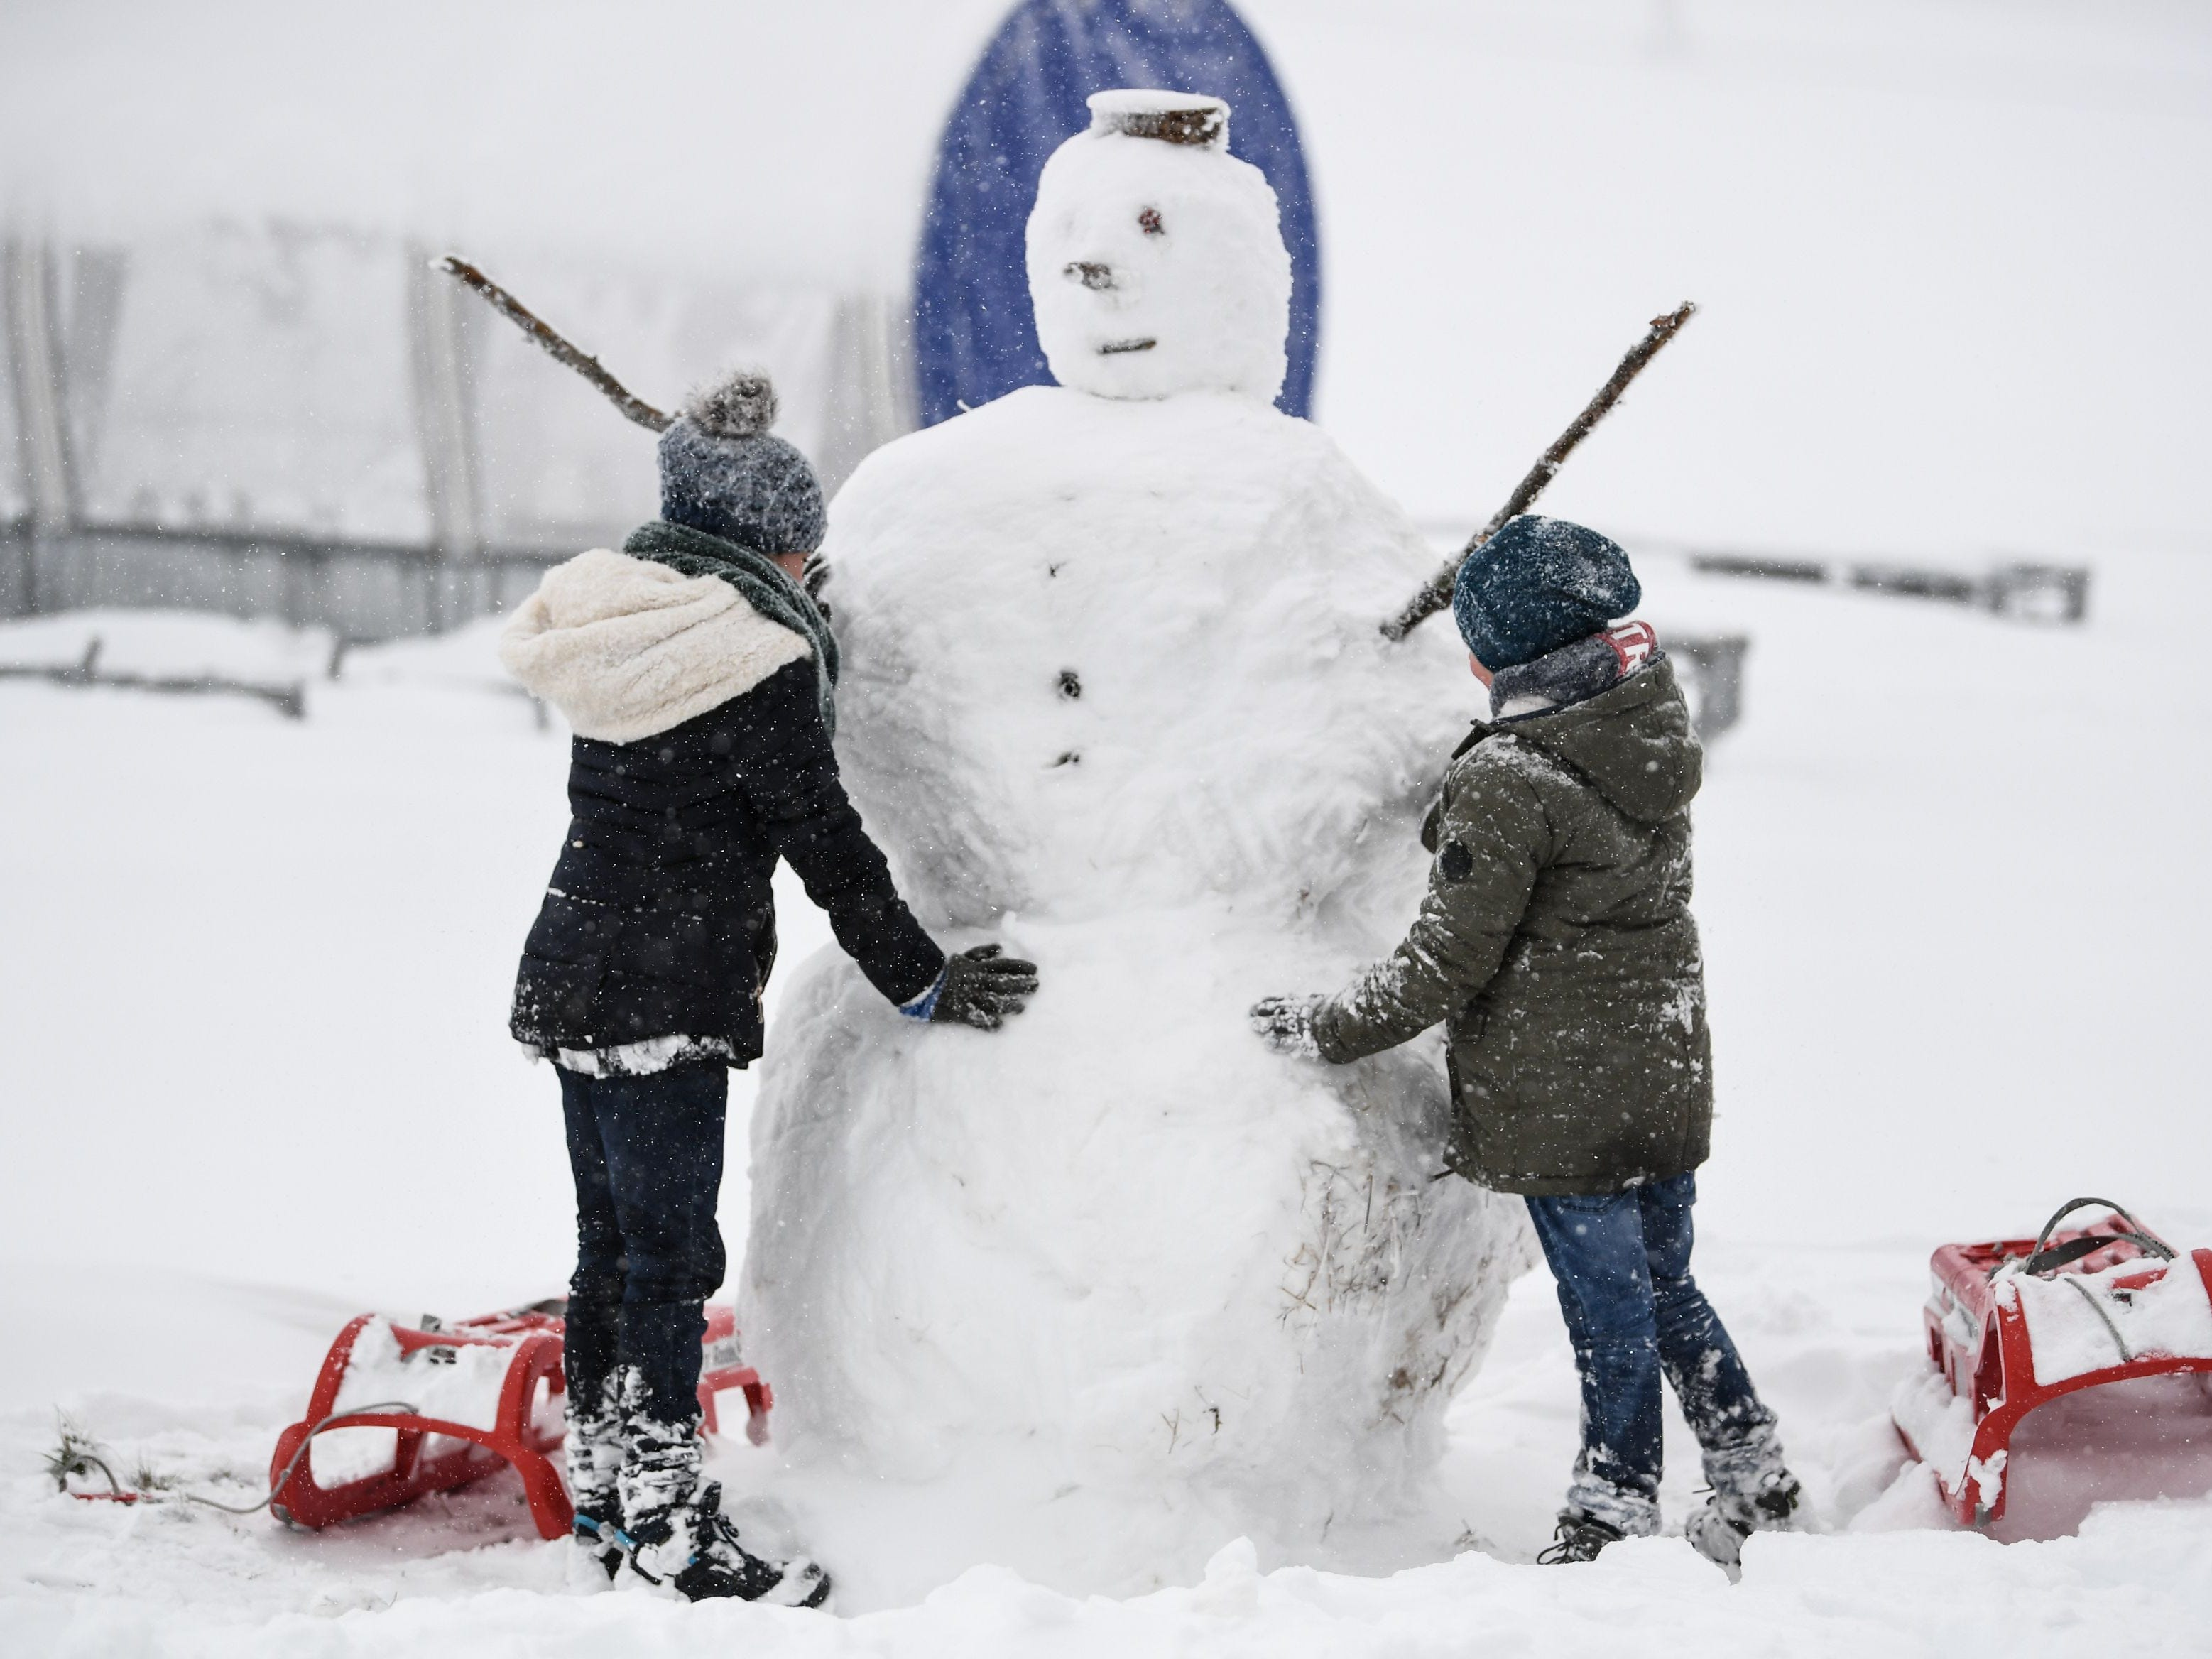 Children build a snowman in Feldberg, Germany, on Oct. 28, 2018.